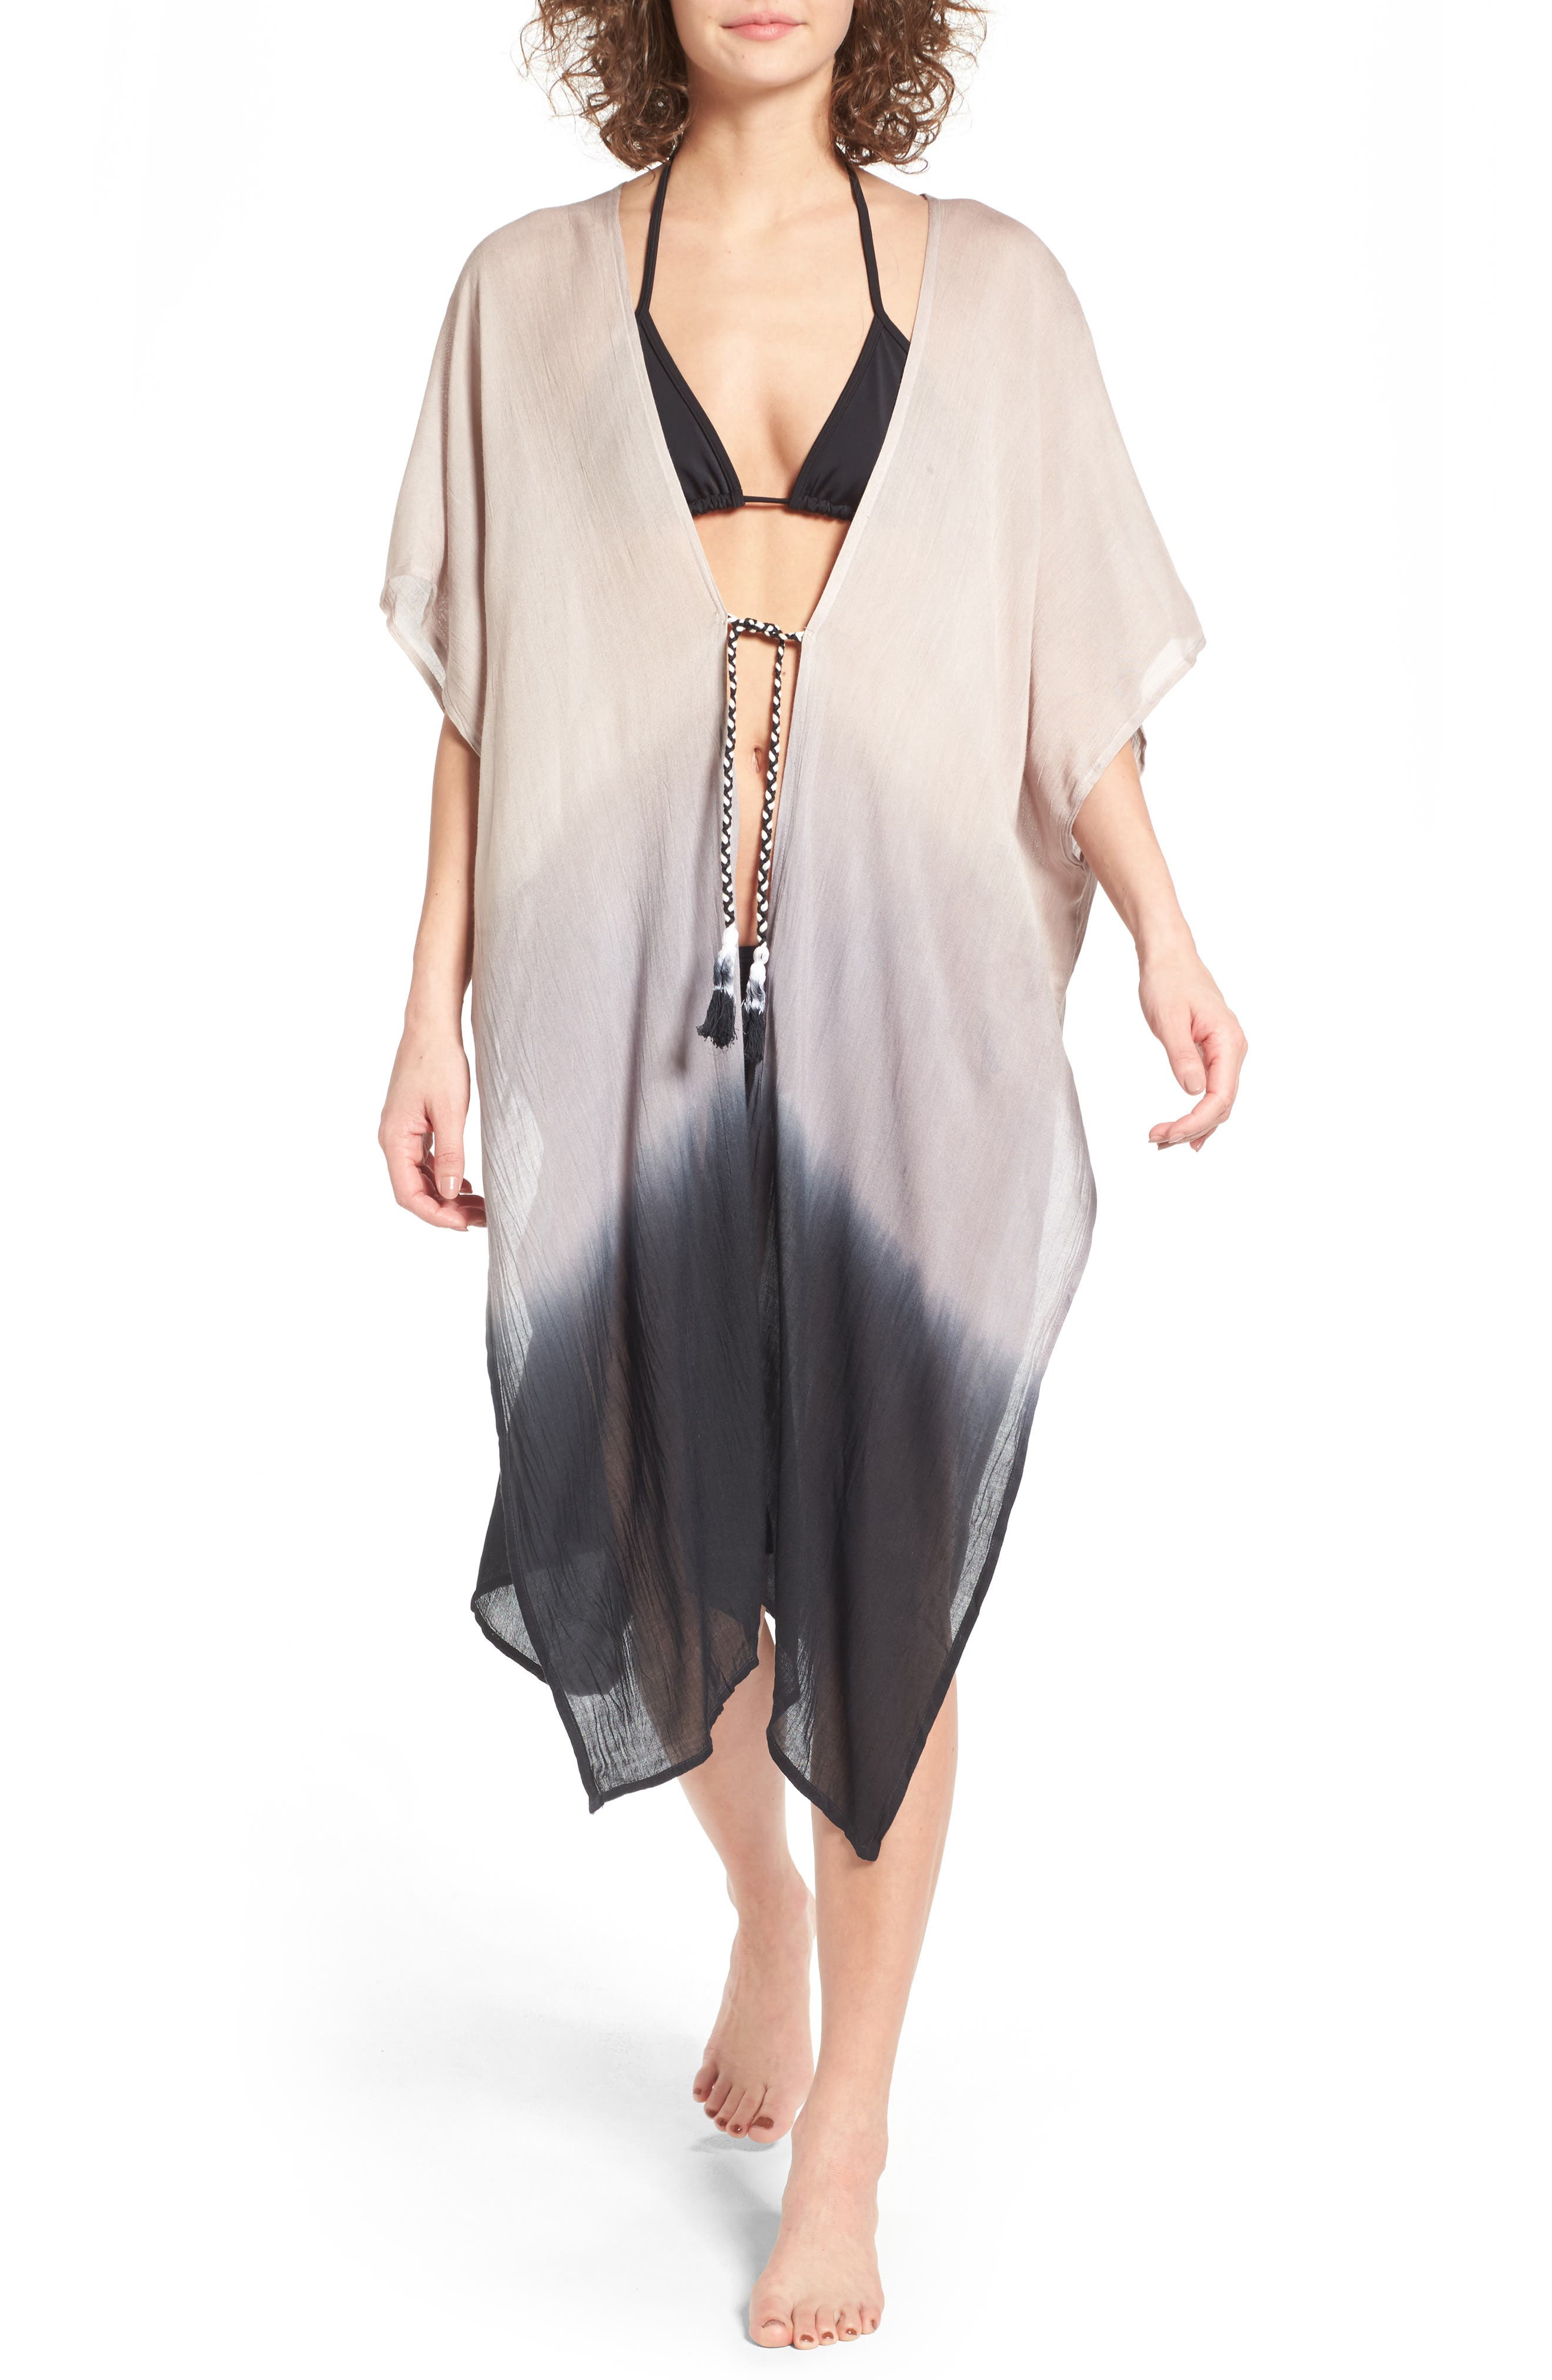 Main Image - Accessory Street Dip Dye Cover-Up